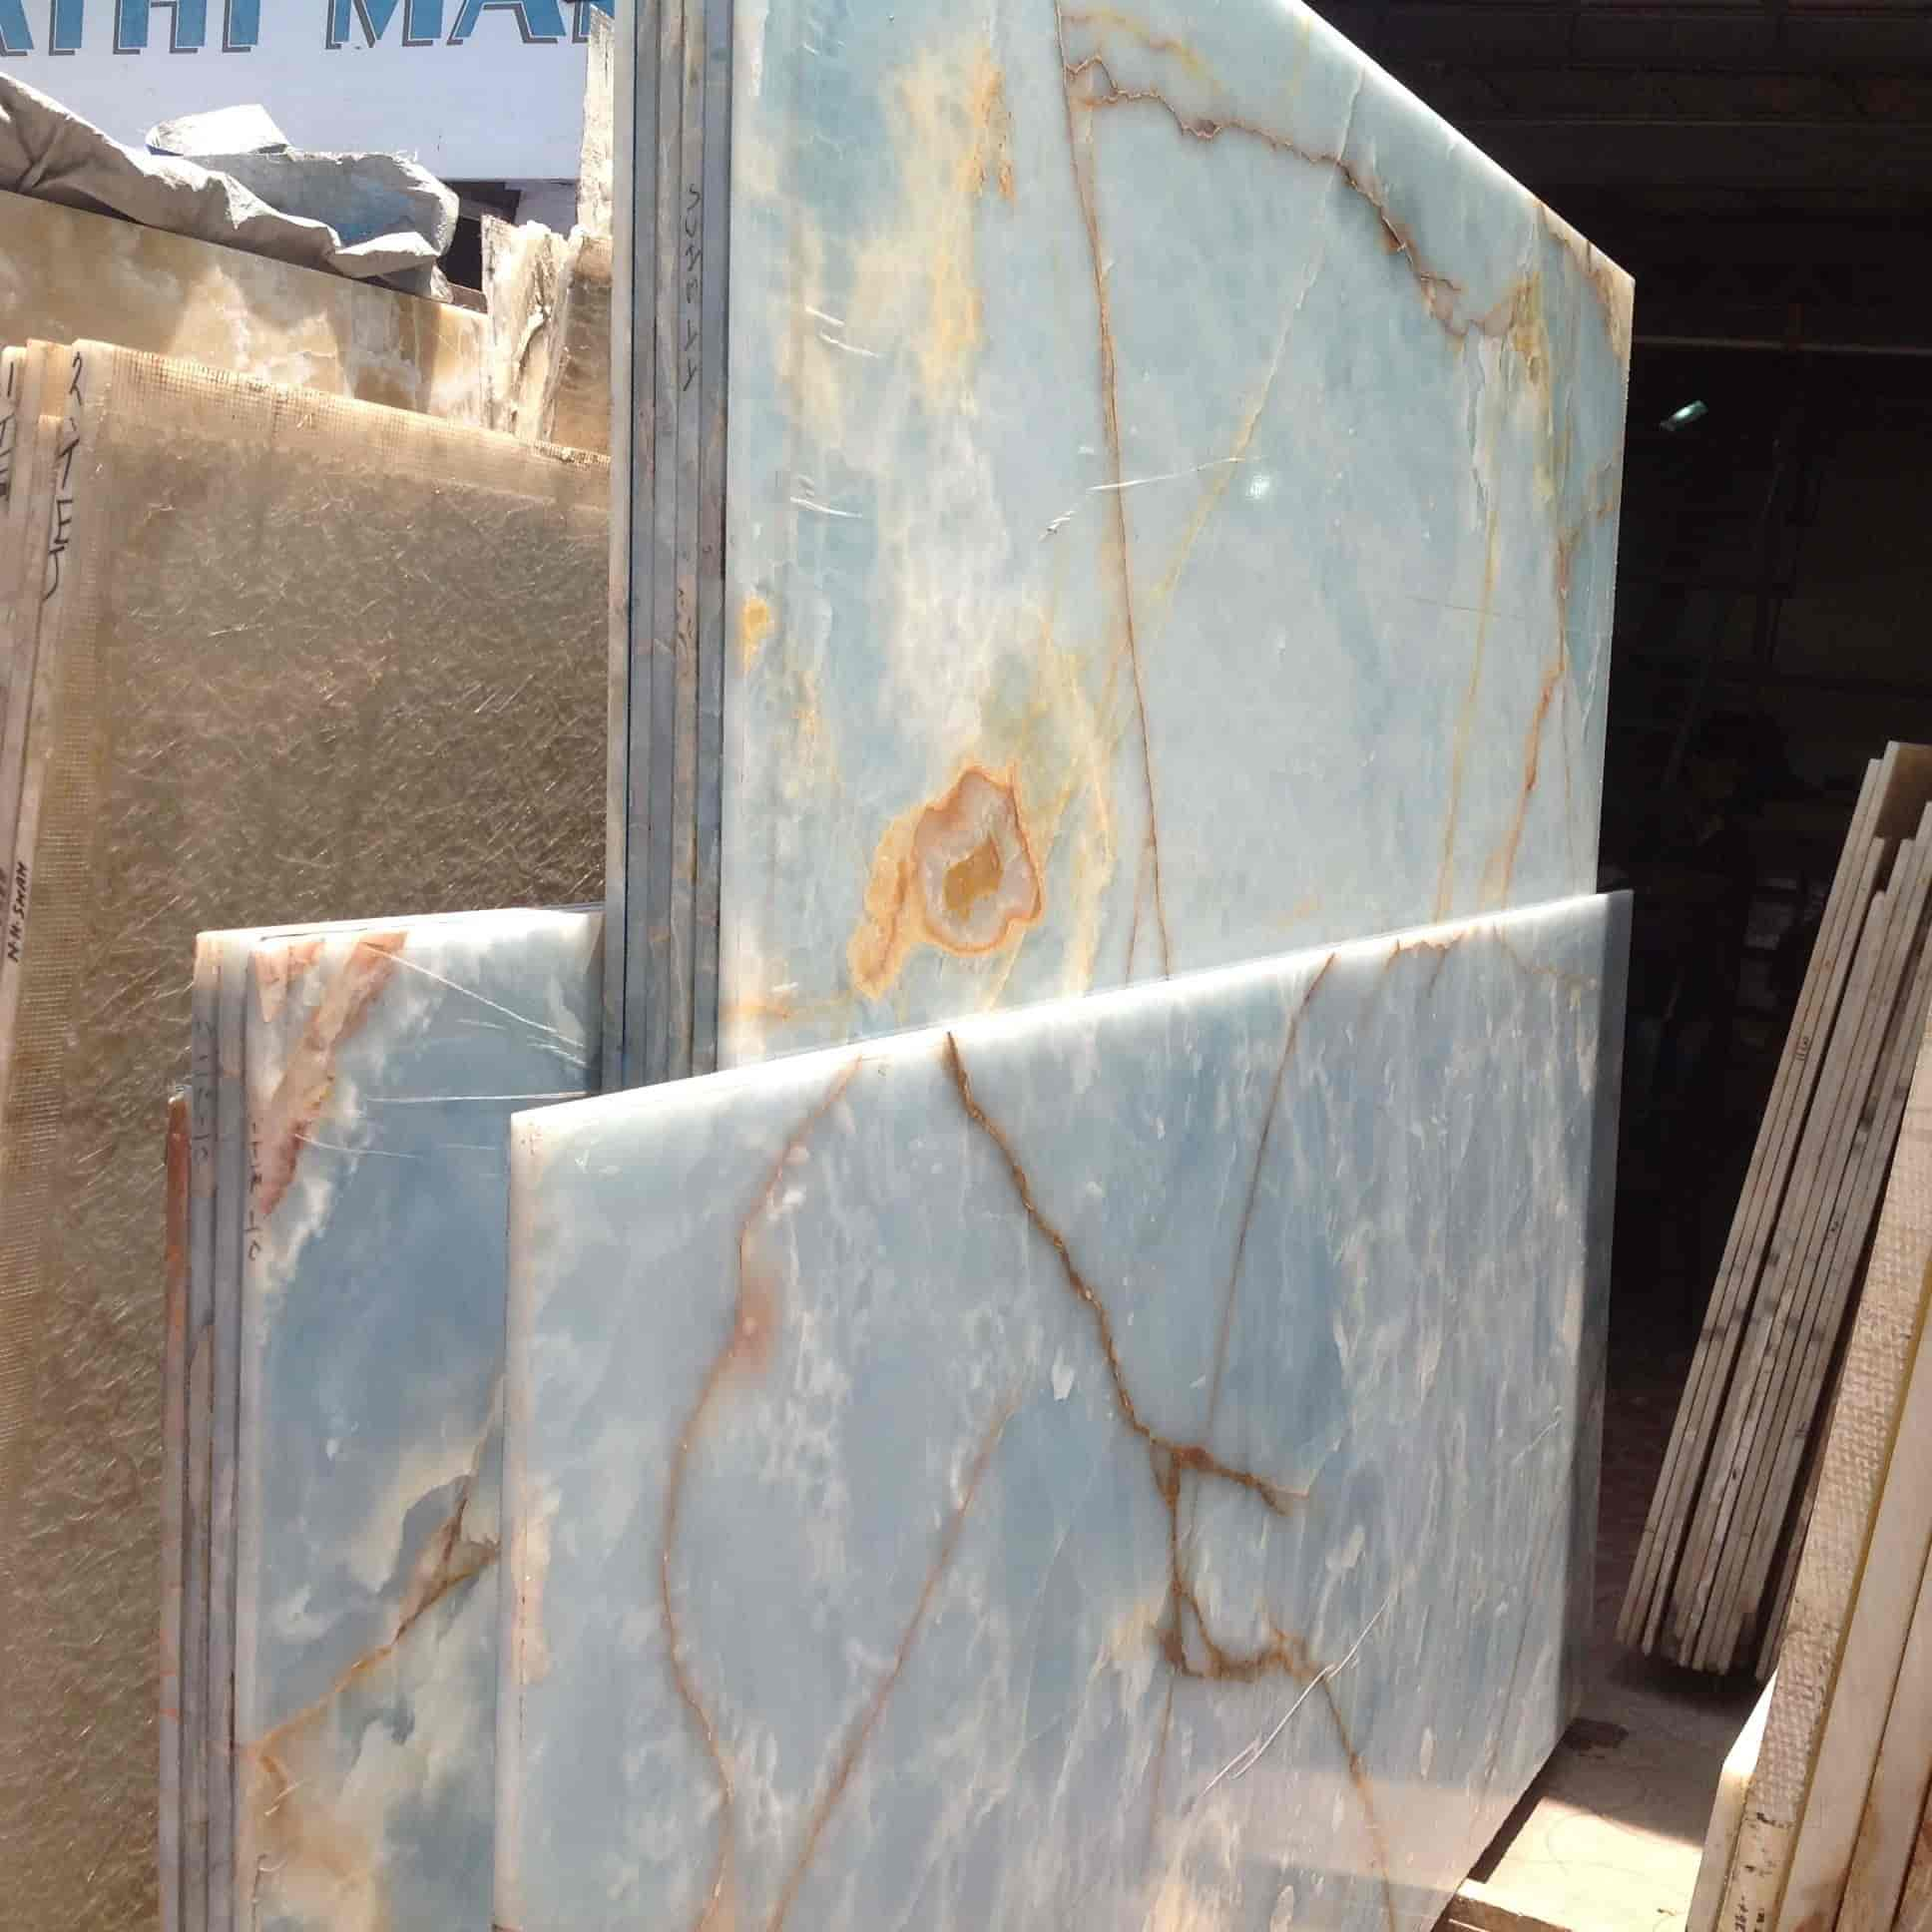 Western India Marble & Mineral Company, Vile Parle East